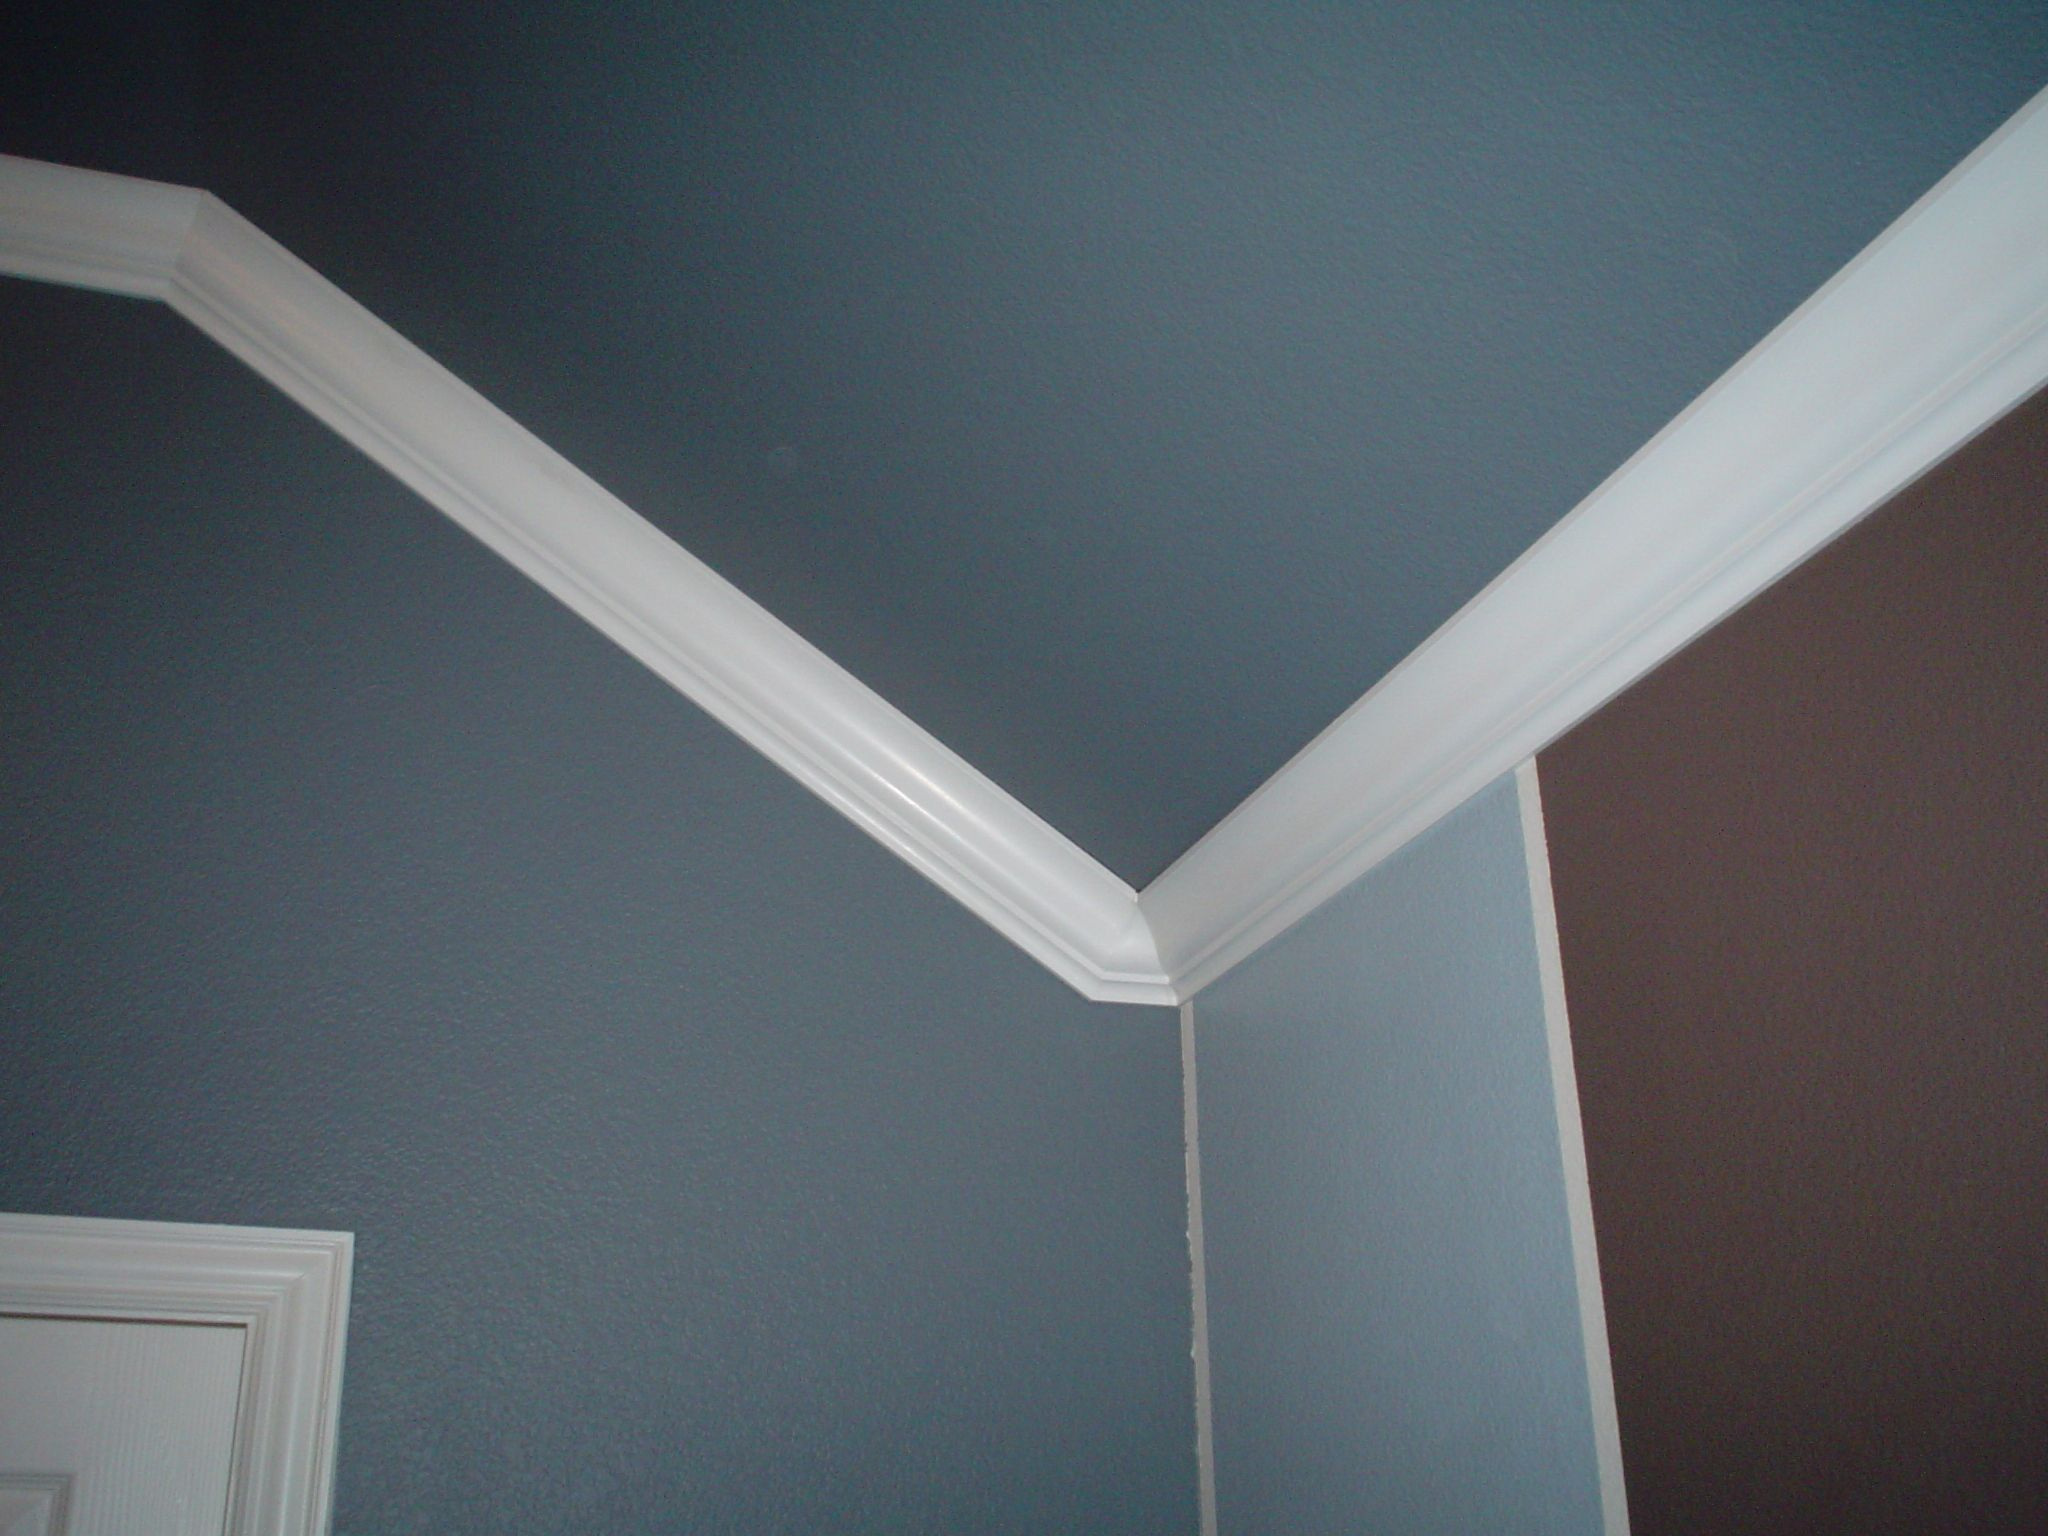 Bedroom Ceiling Moulding Angled Ceiling Crown Molding In Corner Example Next